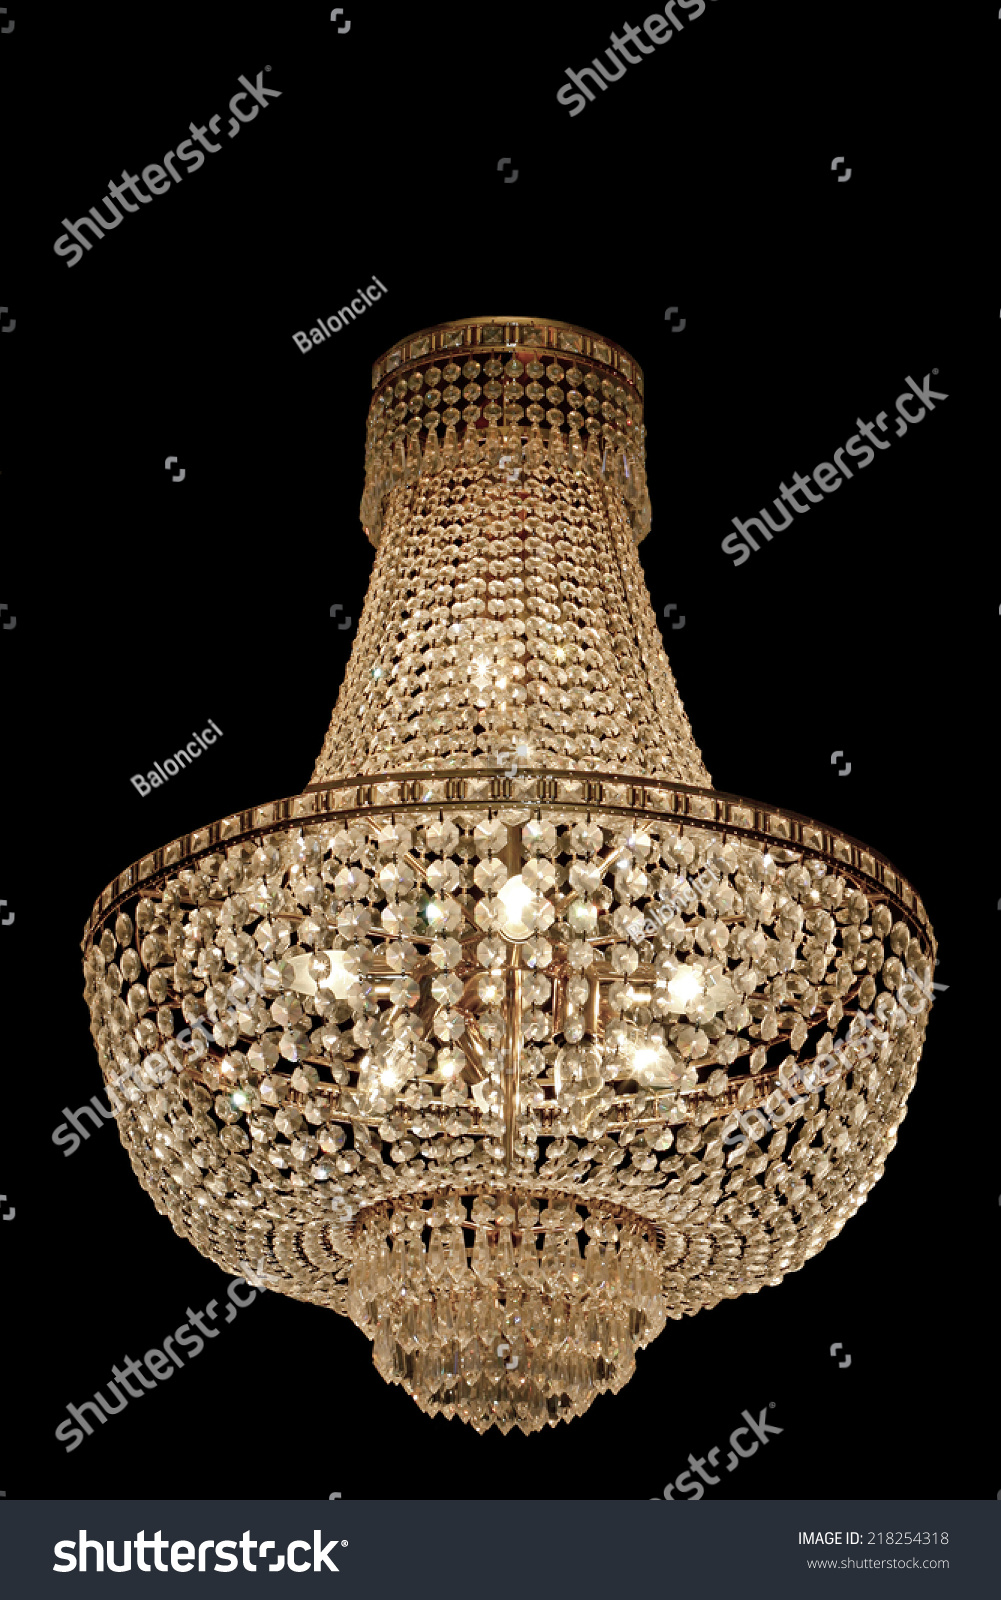 Big Old Expensive Crystal Chandelier Stock Photo 218254318 ...